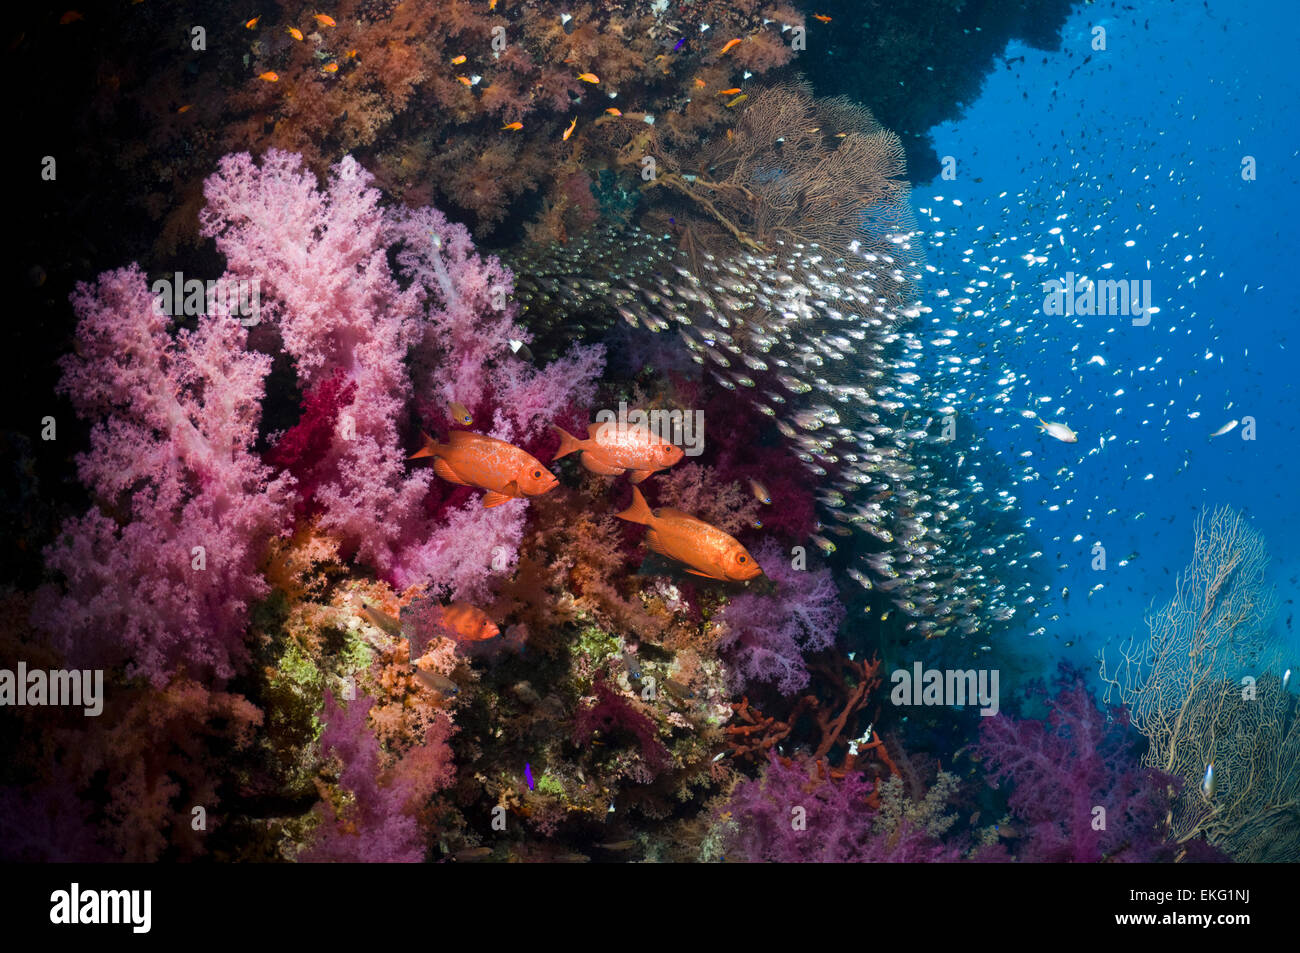 Coral reef with soft corals (Dendronephthya sp), Bigeye or Goggle-eye (Priacanthus hamrur) and a school of Pygmy - Stock Image